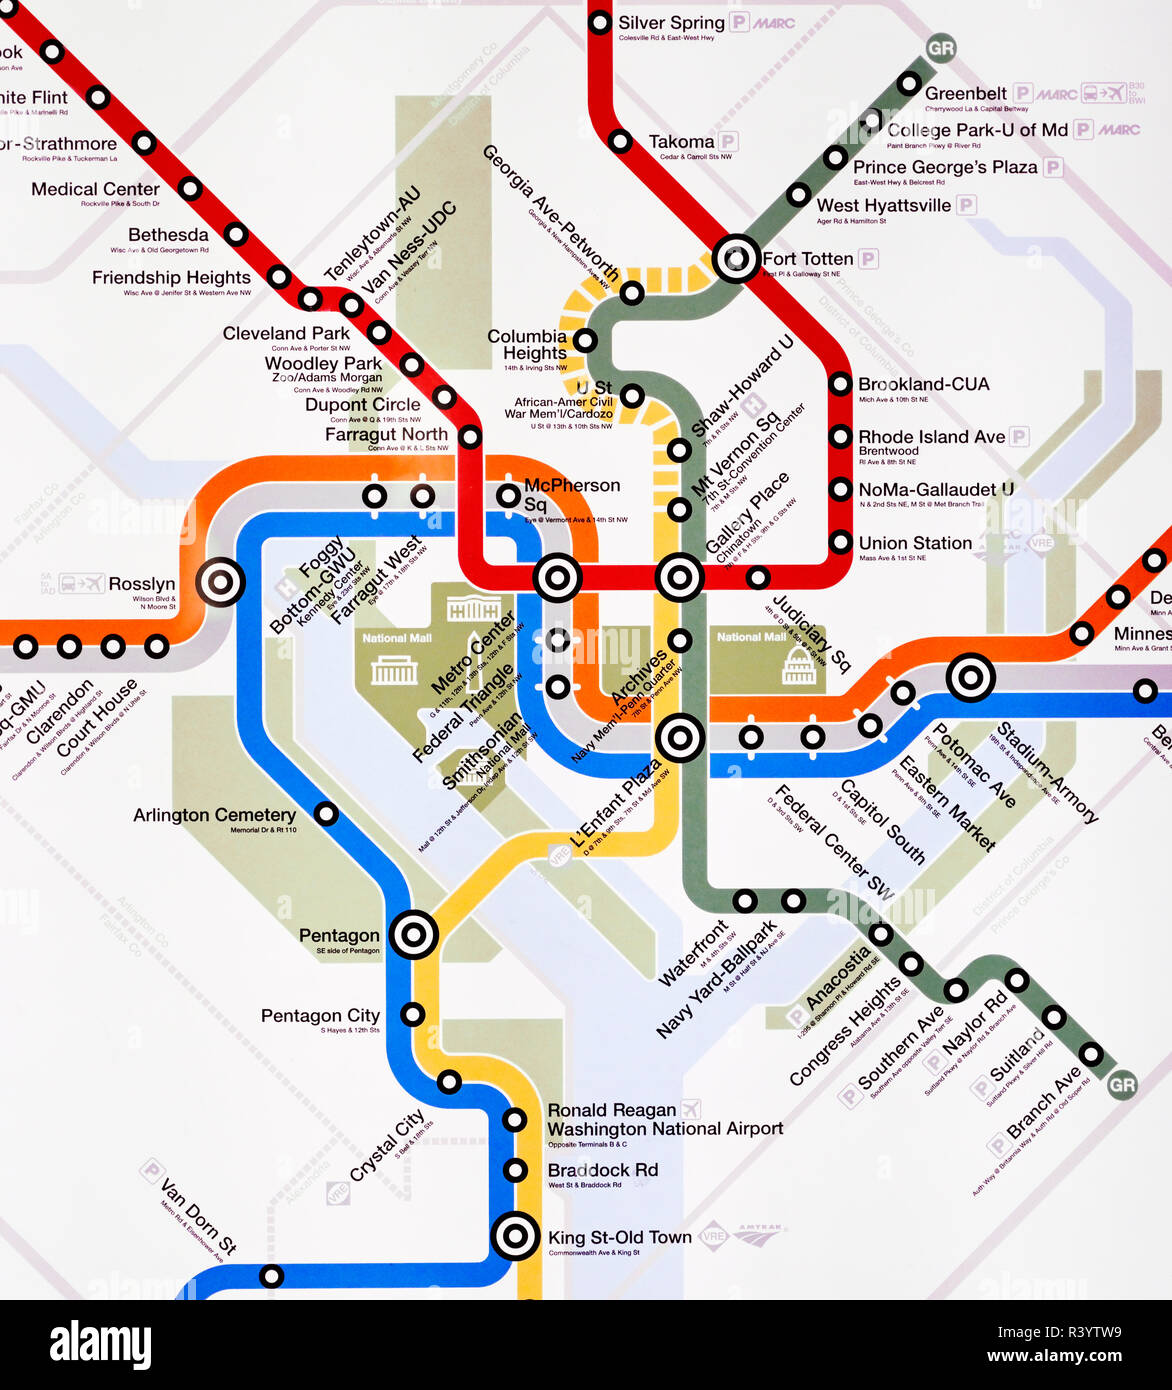 Washington DC subway map Metro - Stock Image